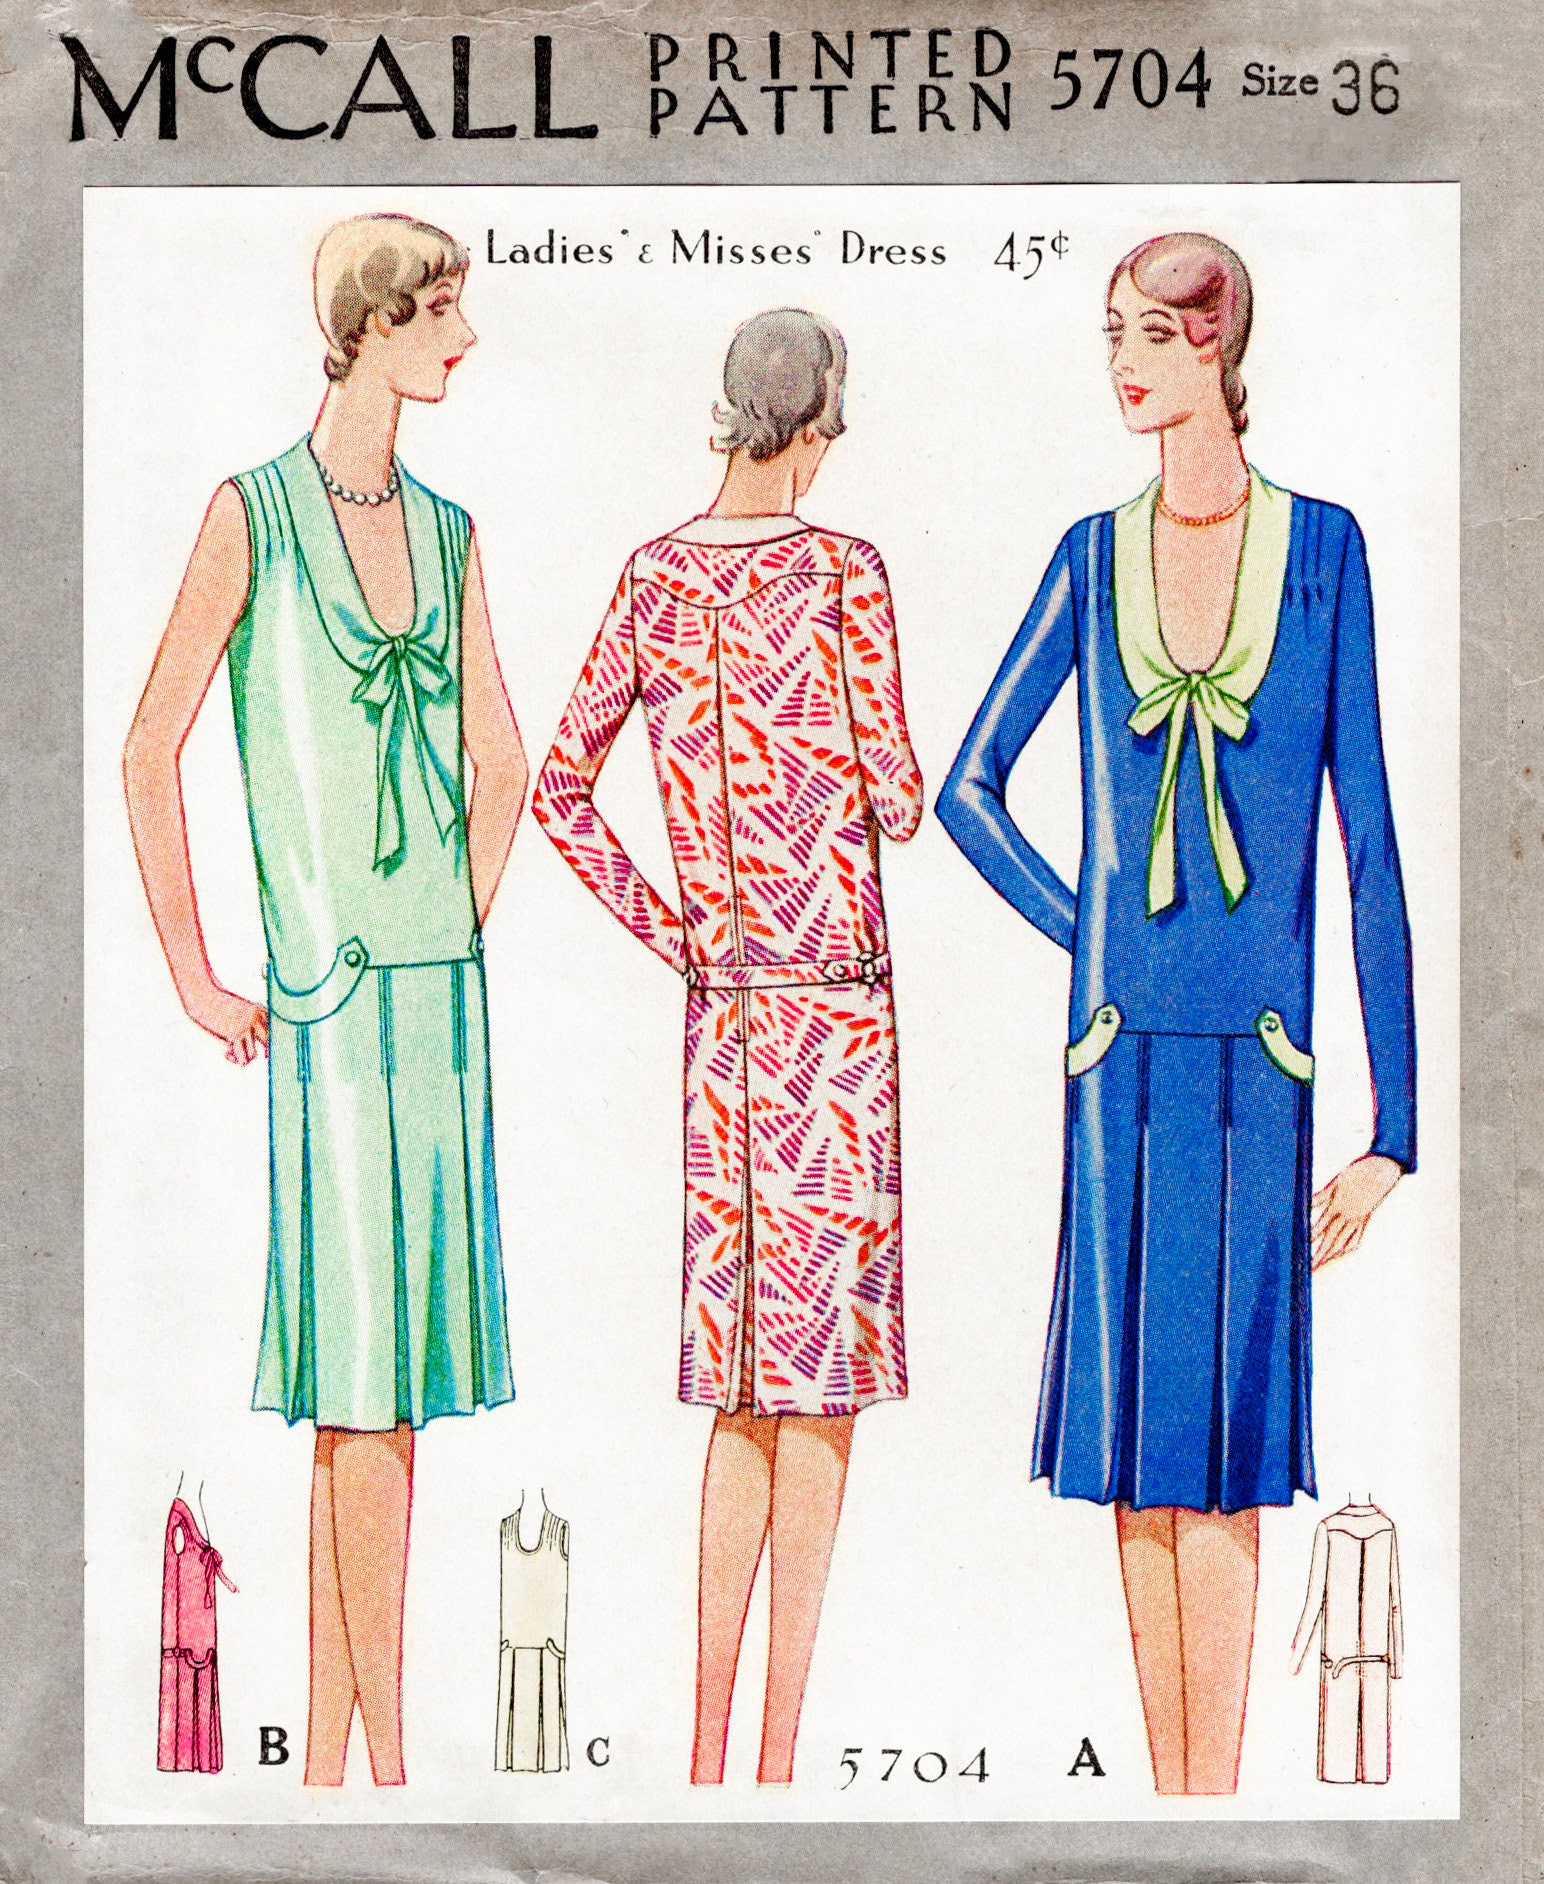 1920s dress vintage sewing pattern reproduction flapper pleat